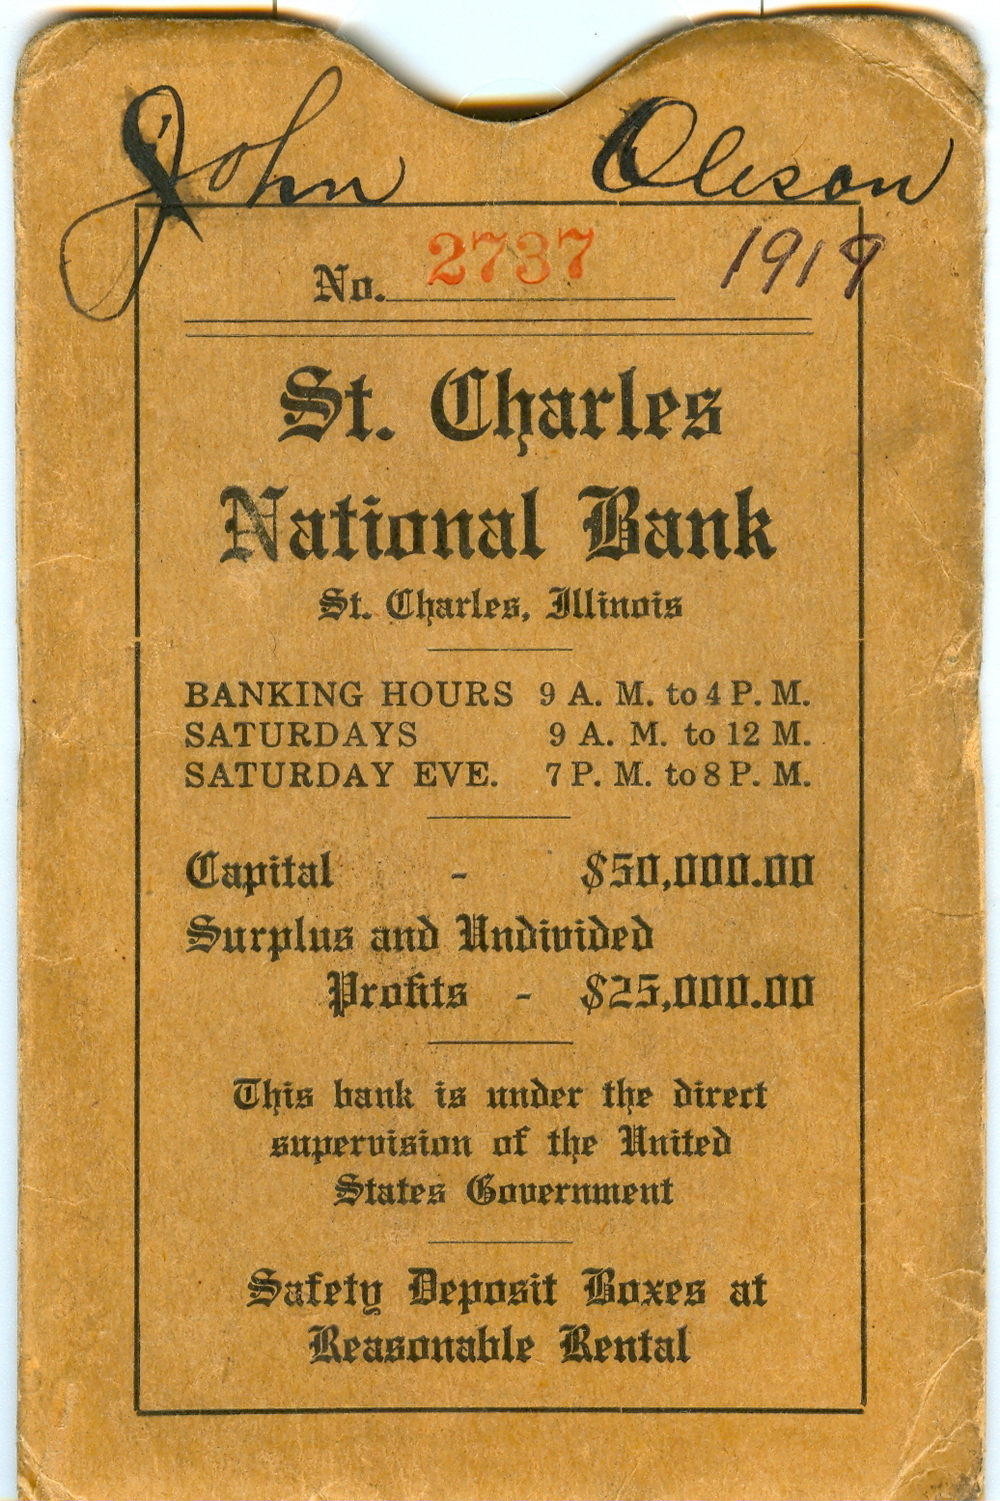 St. Charles National Bank Savings Book Packet, c. 1919